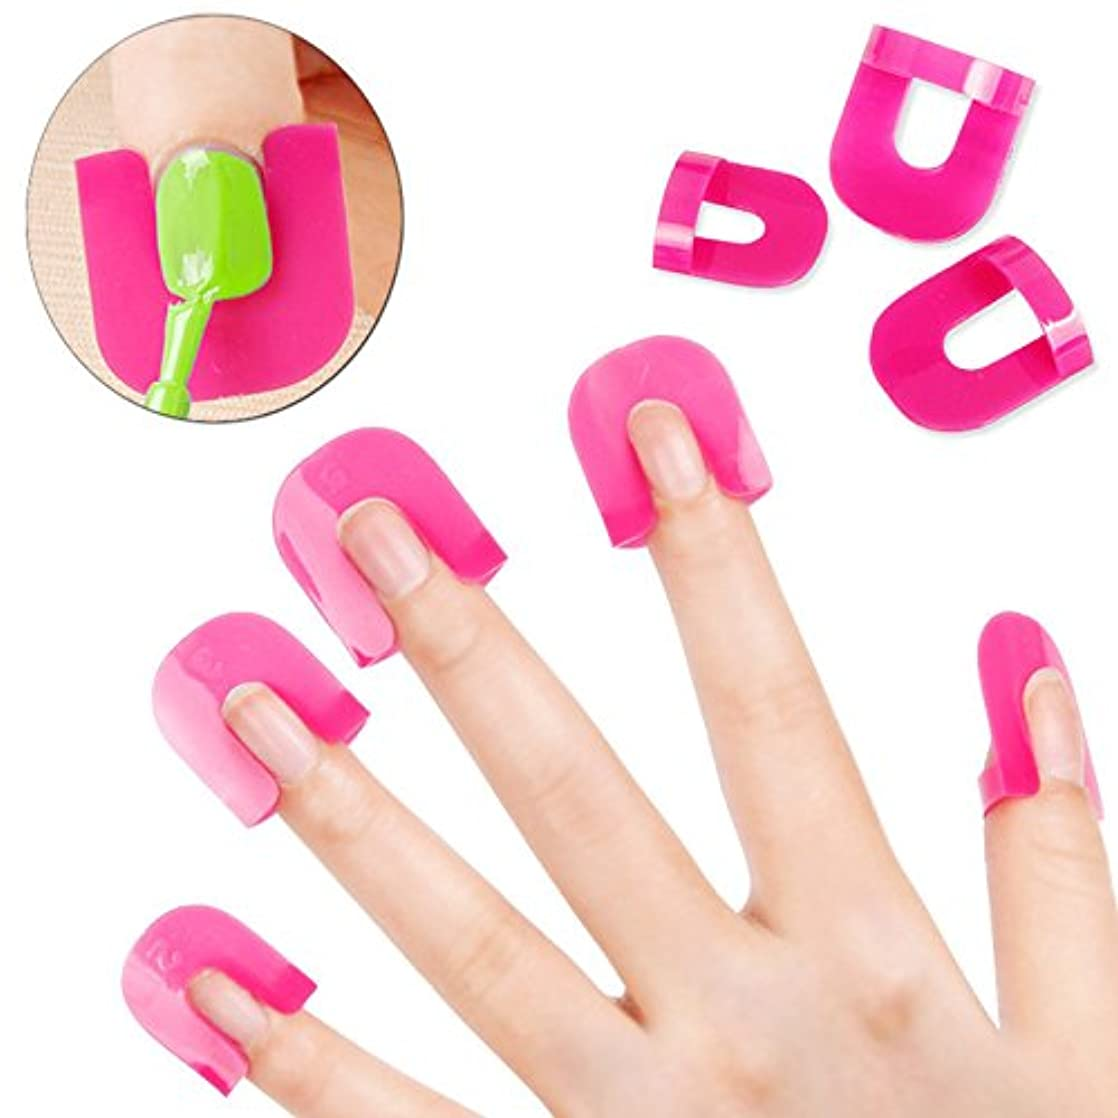 New 26PCS Professional French Nail Art Manicure Stickers Tips Finger Cover Polish Shield Protector Plastic Case...